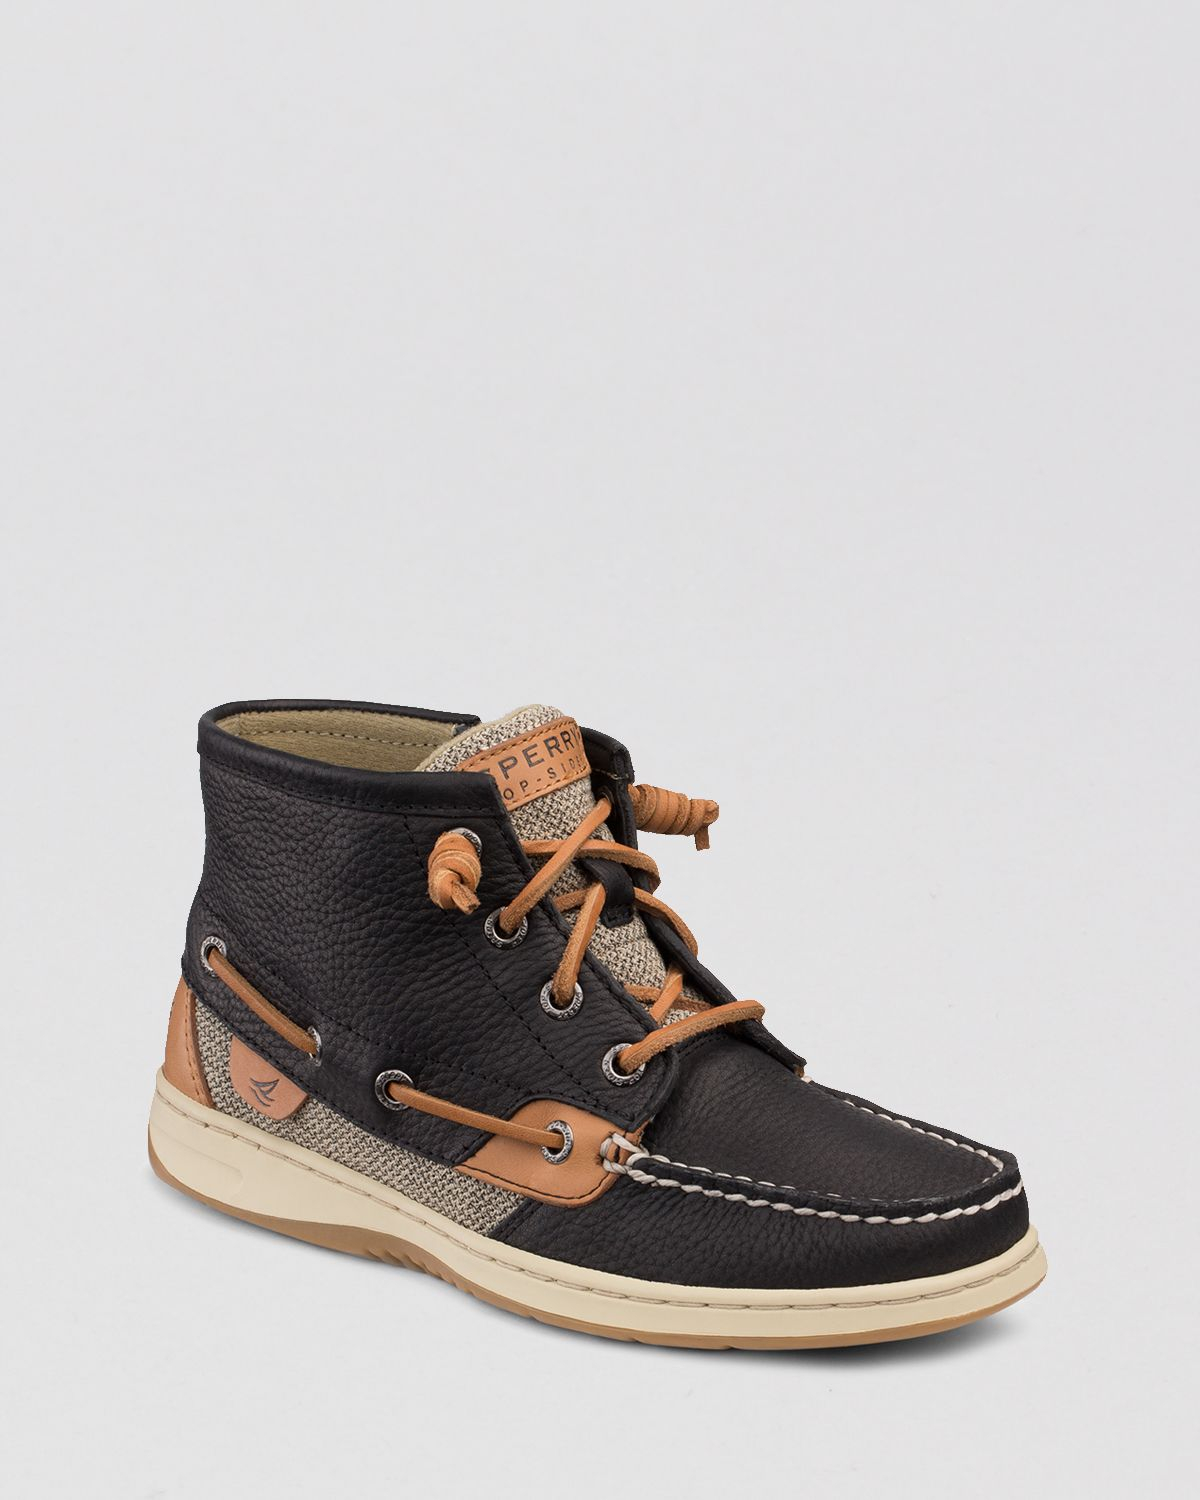 Sperry Top-sider Boat Shoe Booties - Marella in Black